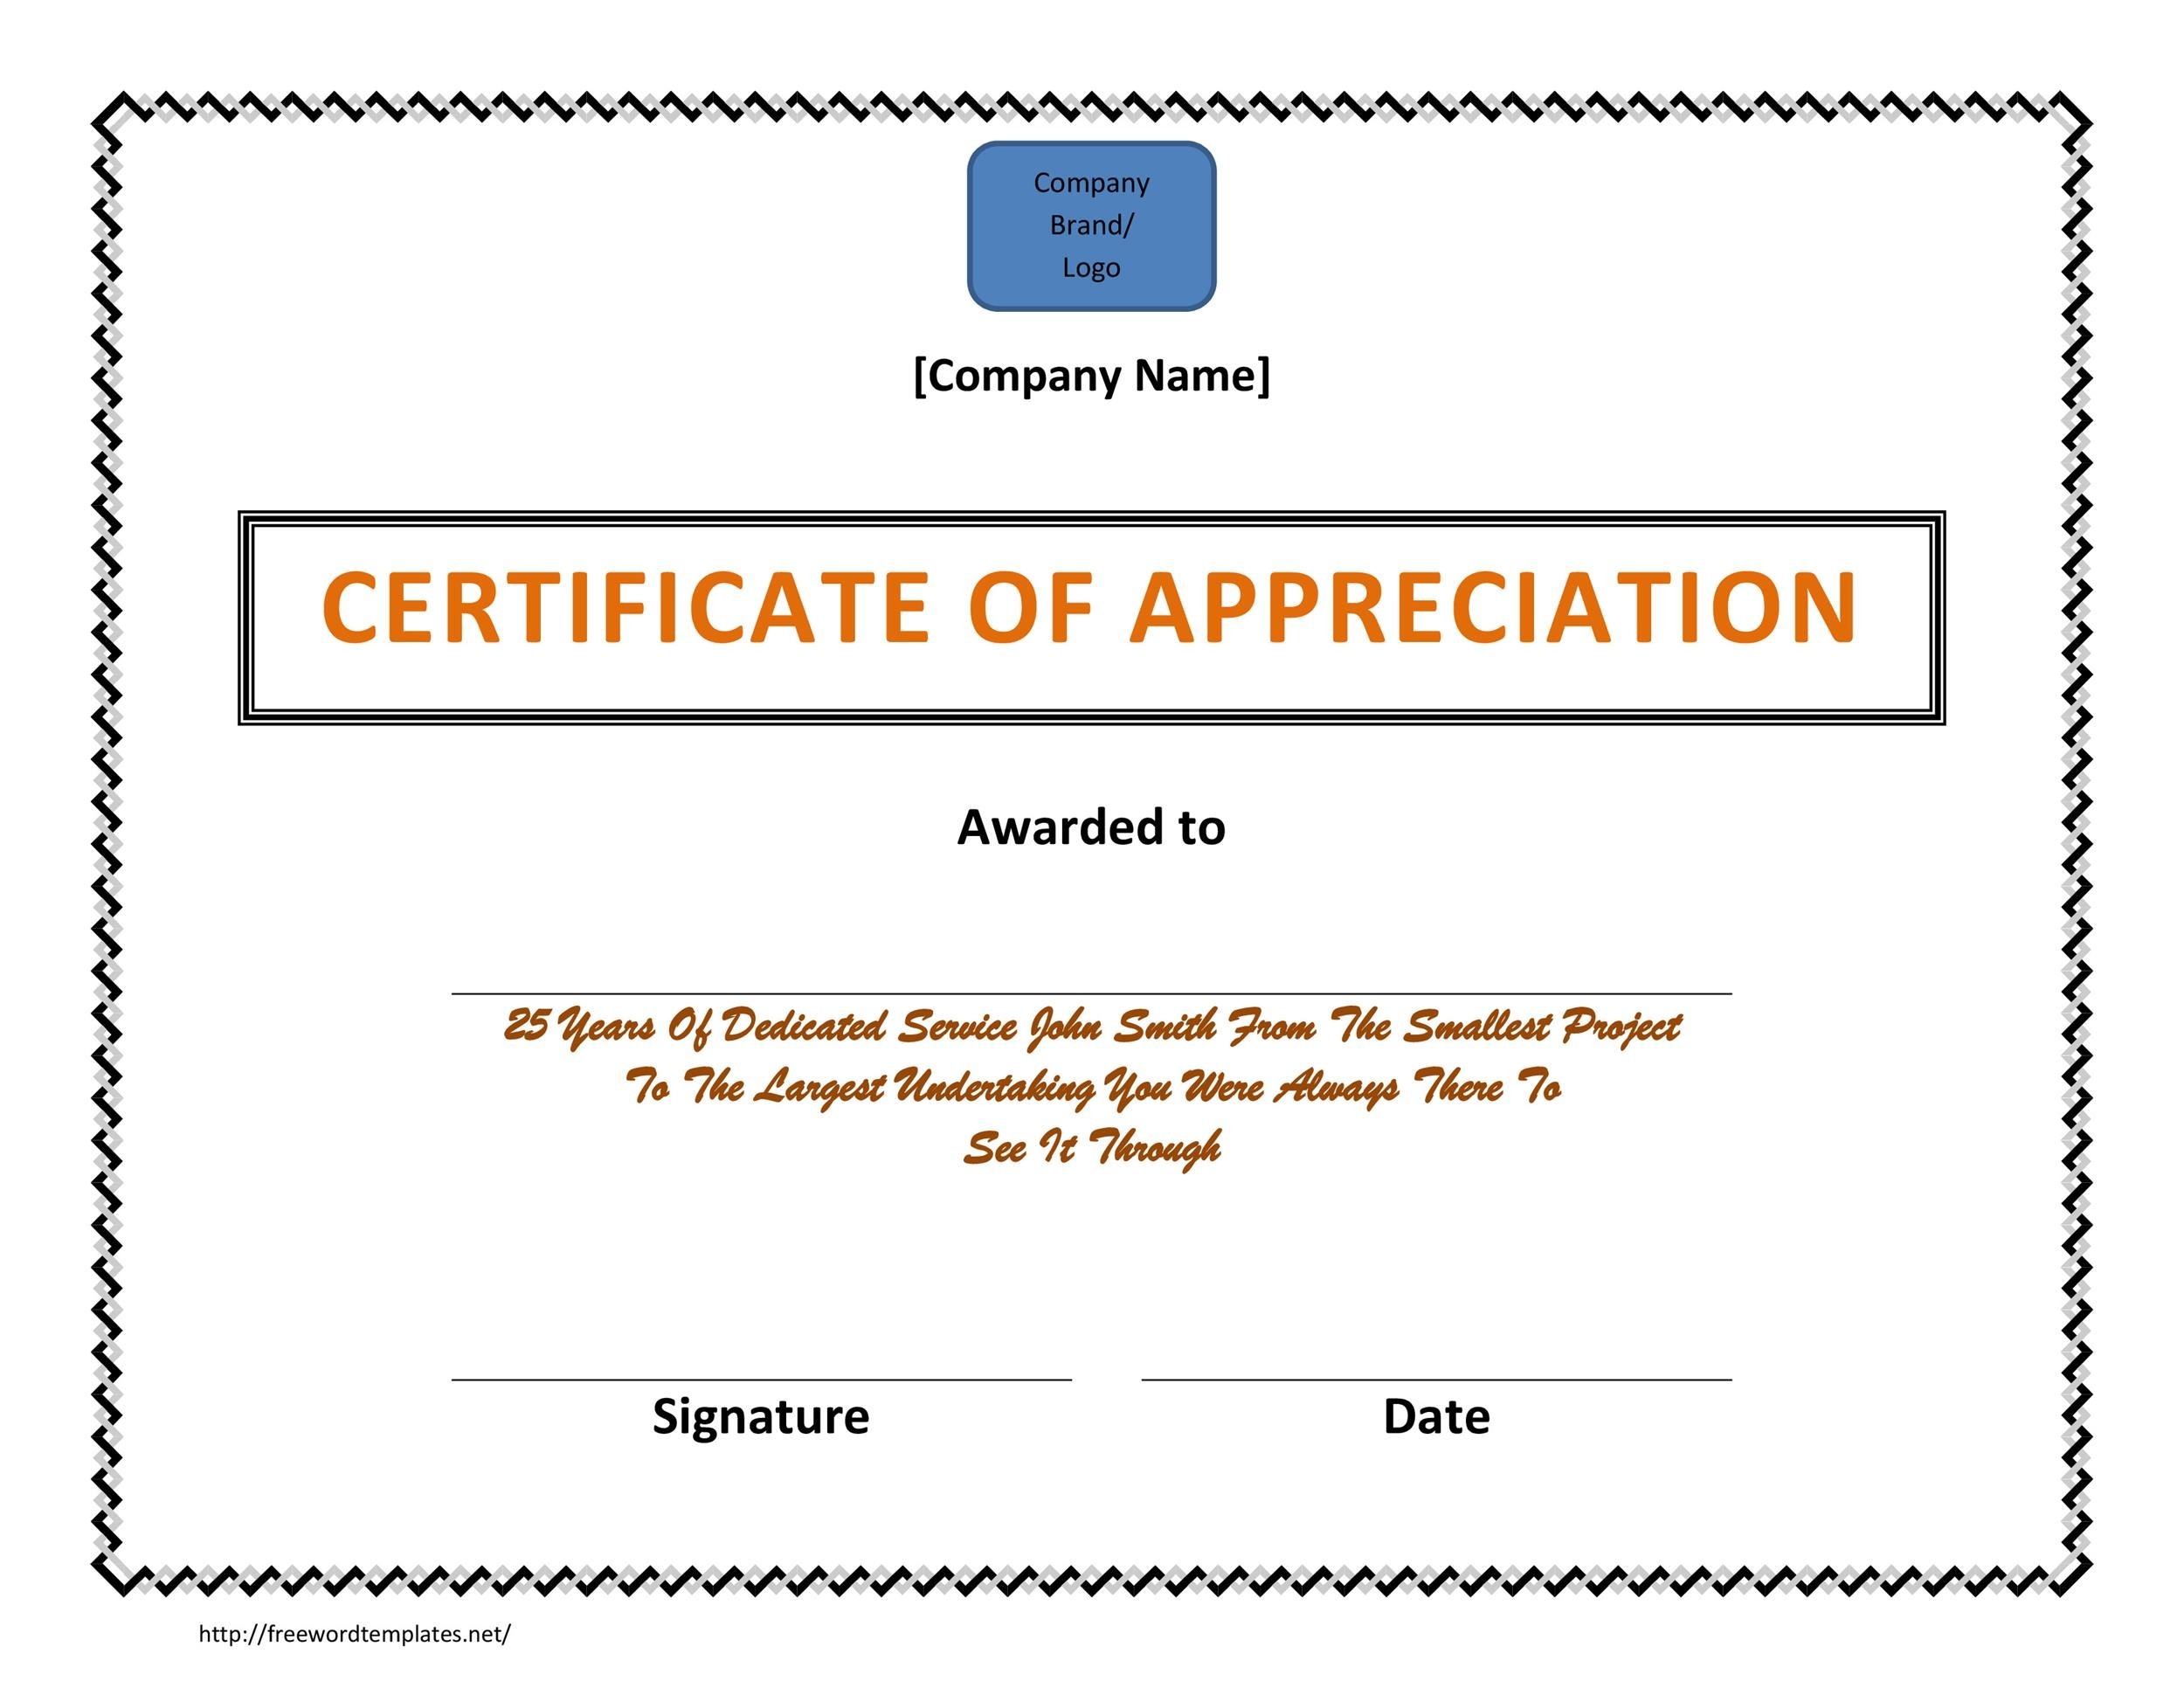 30 free certificate of appreciation templates and letters free certificate of appreciation 05 thecheapjerseys Choice Image